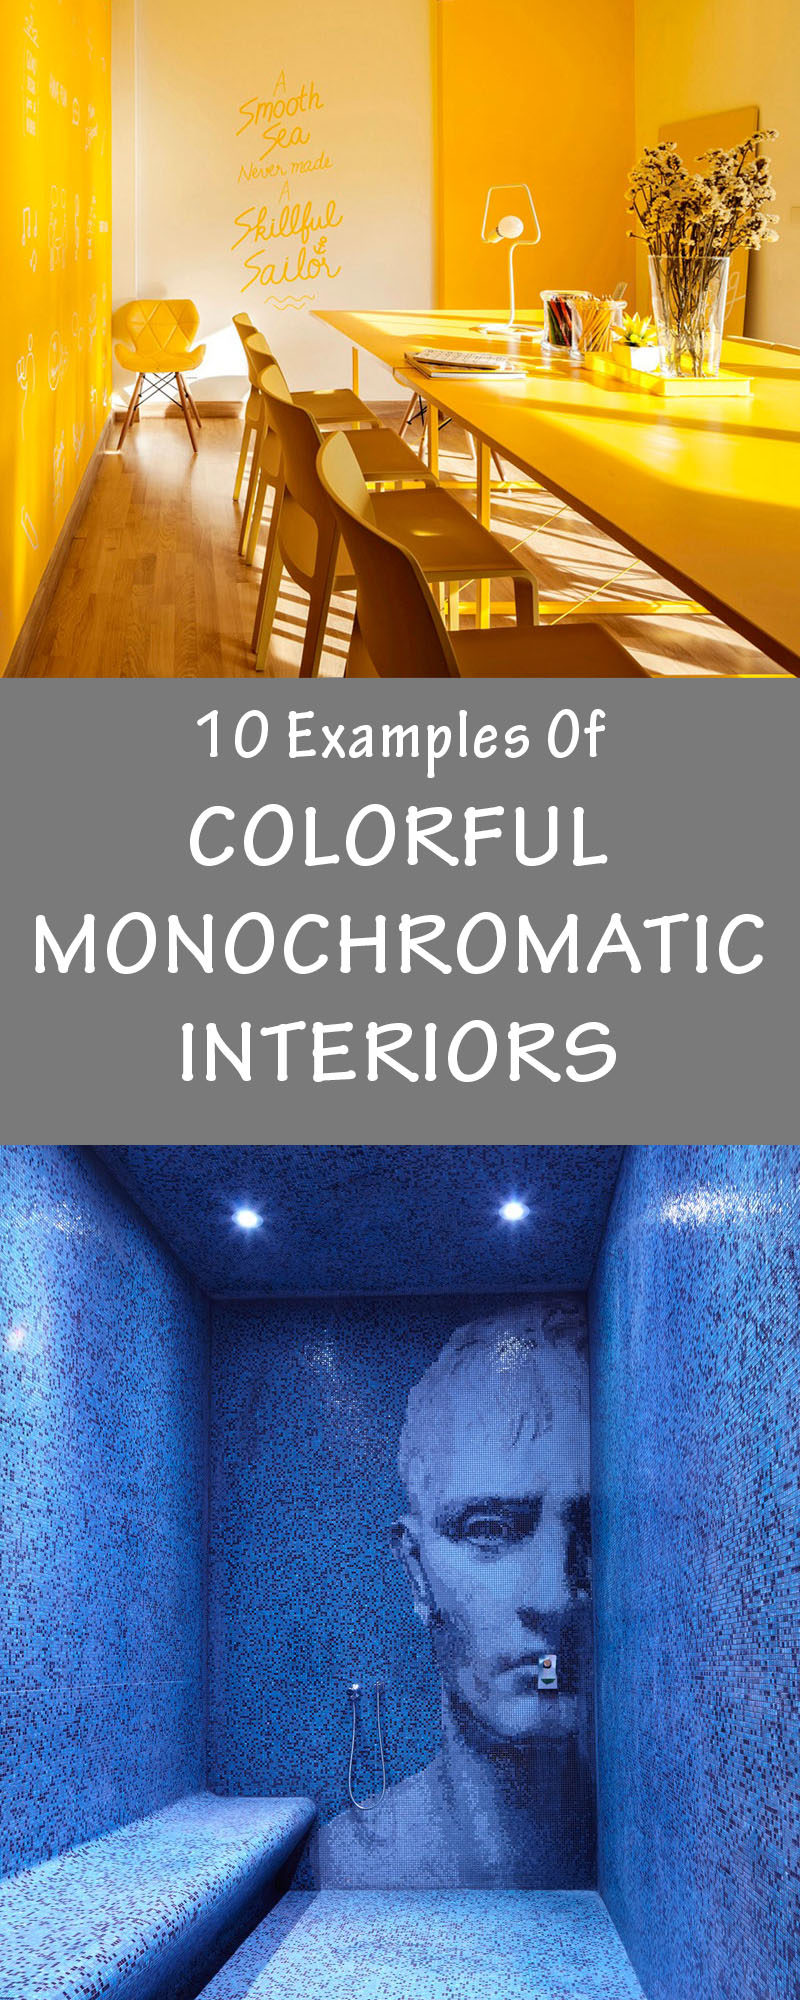 10 Examples Of Monochromatic Interiors